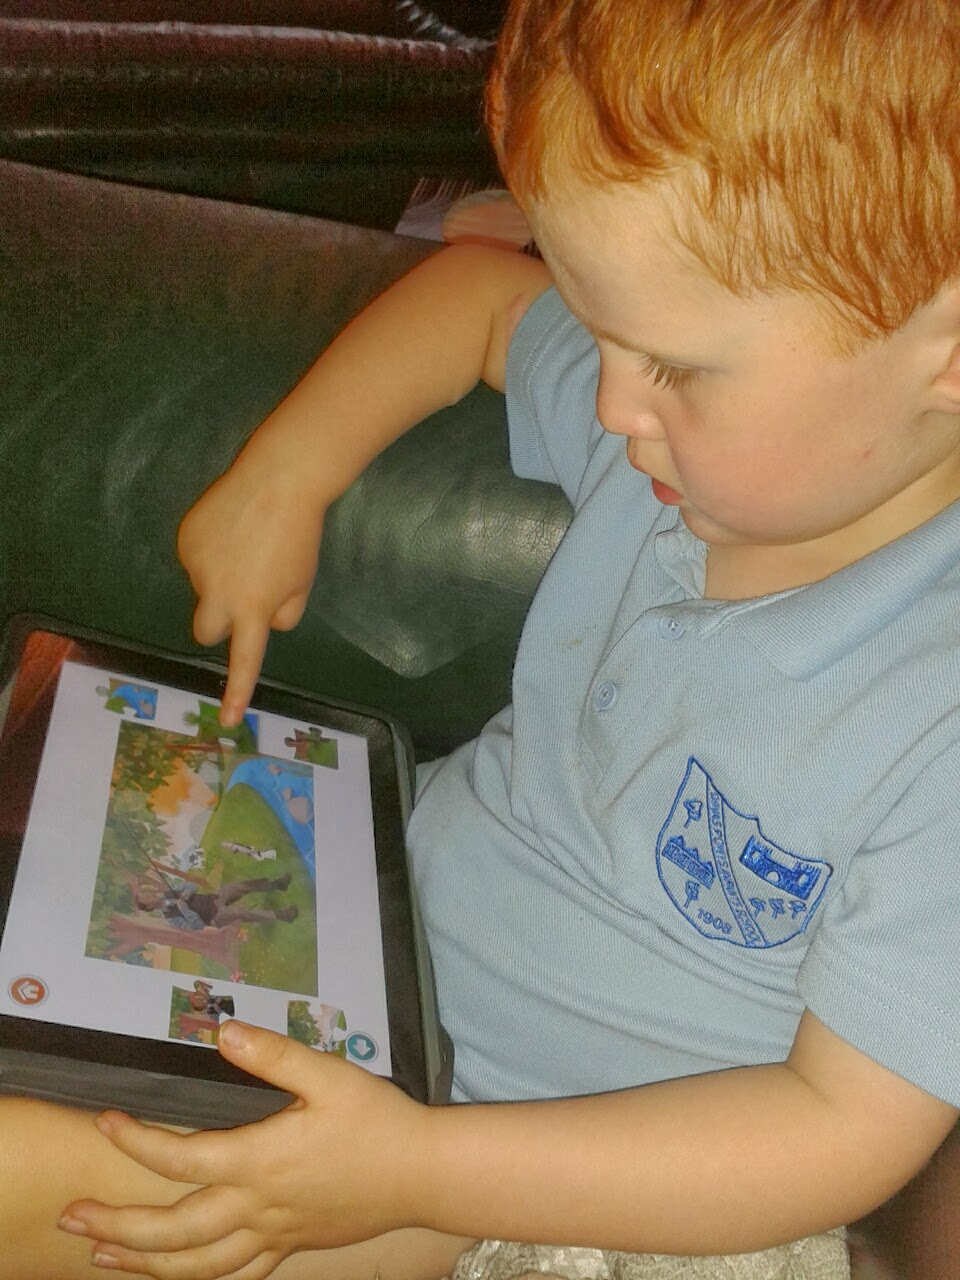 Ieuan playing with iPad